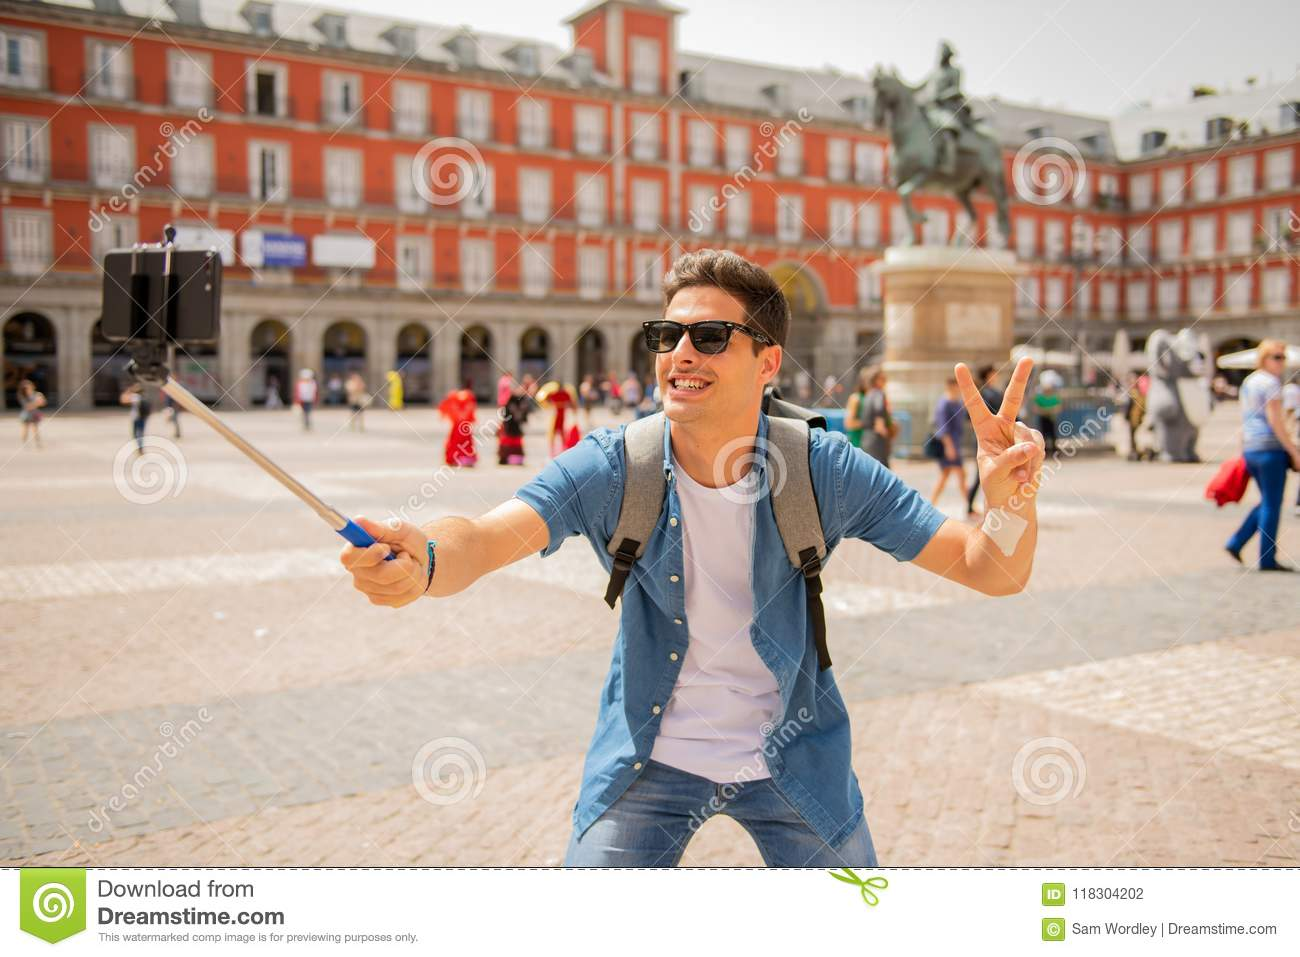 Handsome young caucasian tourist man happy and excited taking a selfie in Plaza Mayor, Madrid Spain